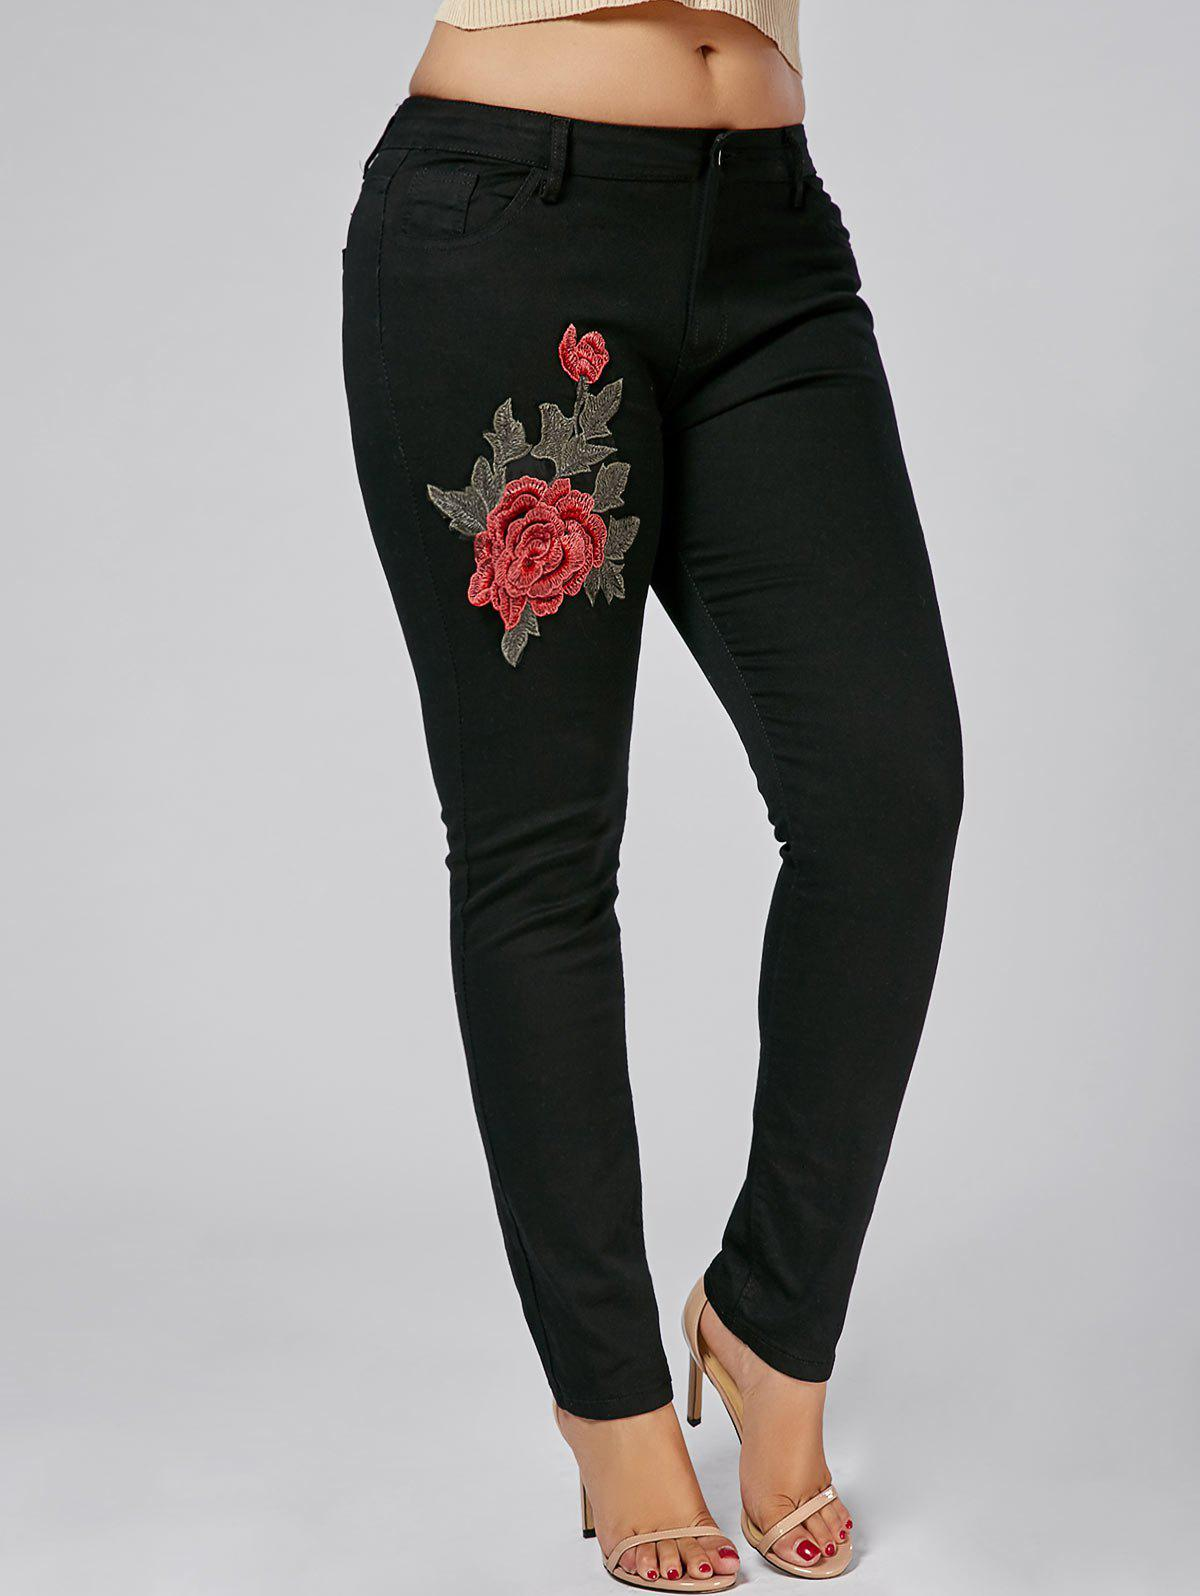 Plus Size Embroidered Tight JeansWOMEN<br><br>Size: 3XL; Color: BLACK; Style: Fashion; Length: Ninth; Material: Cotton,Jeans,Polyester; Fit Type: Skinny; Waist Type: Low; Closure Type: Zipper Fly; Pattern Type: Floral; Embellishment: Appliques; Pant Style: Pencil Pants; Weight: 0.4700kg; Package Contents: 1 x Jeans;